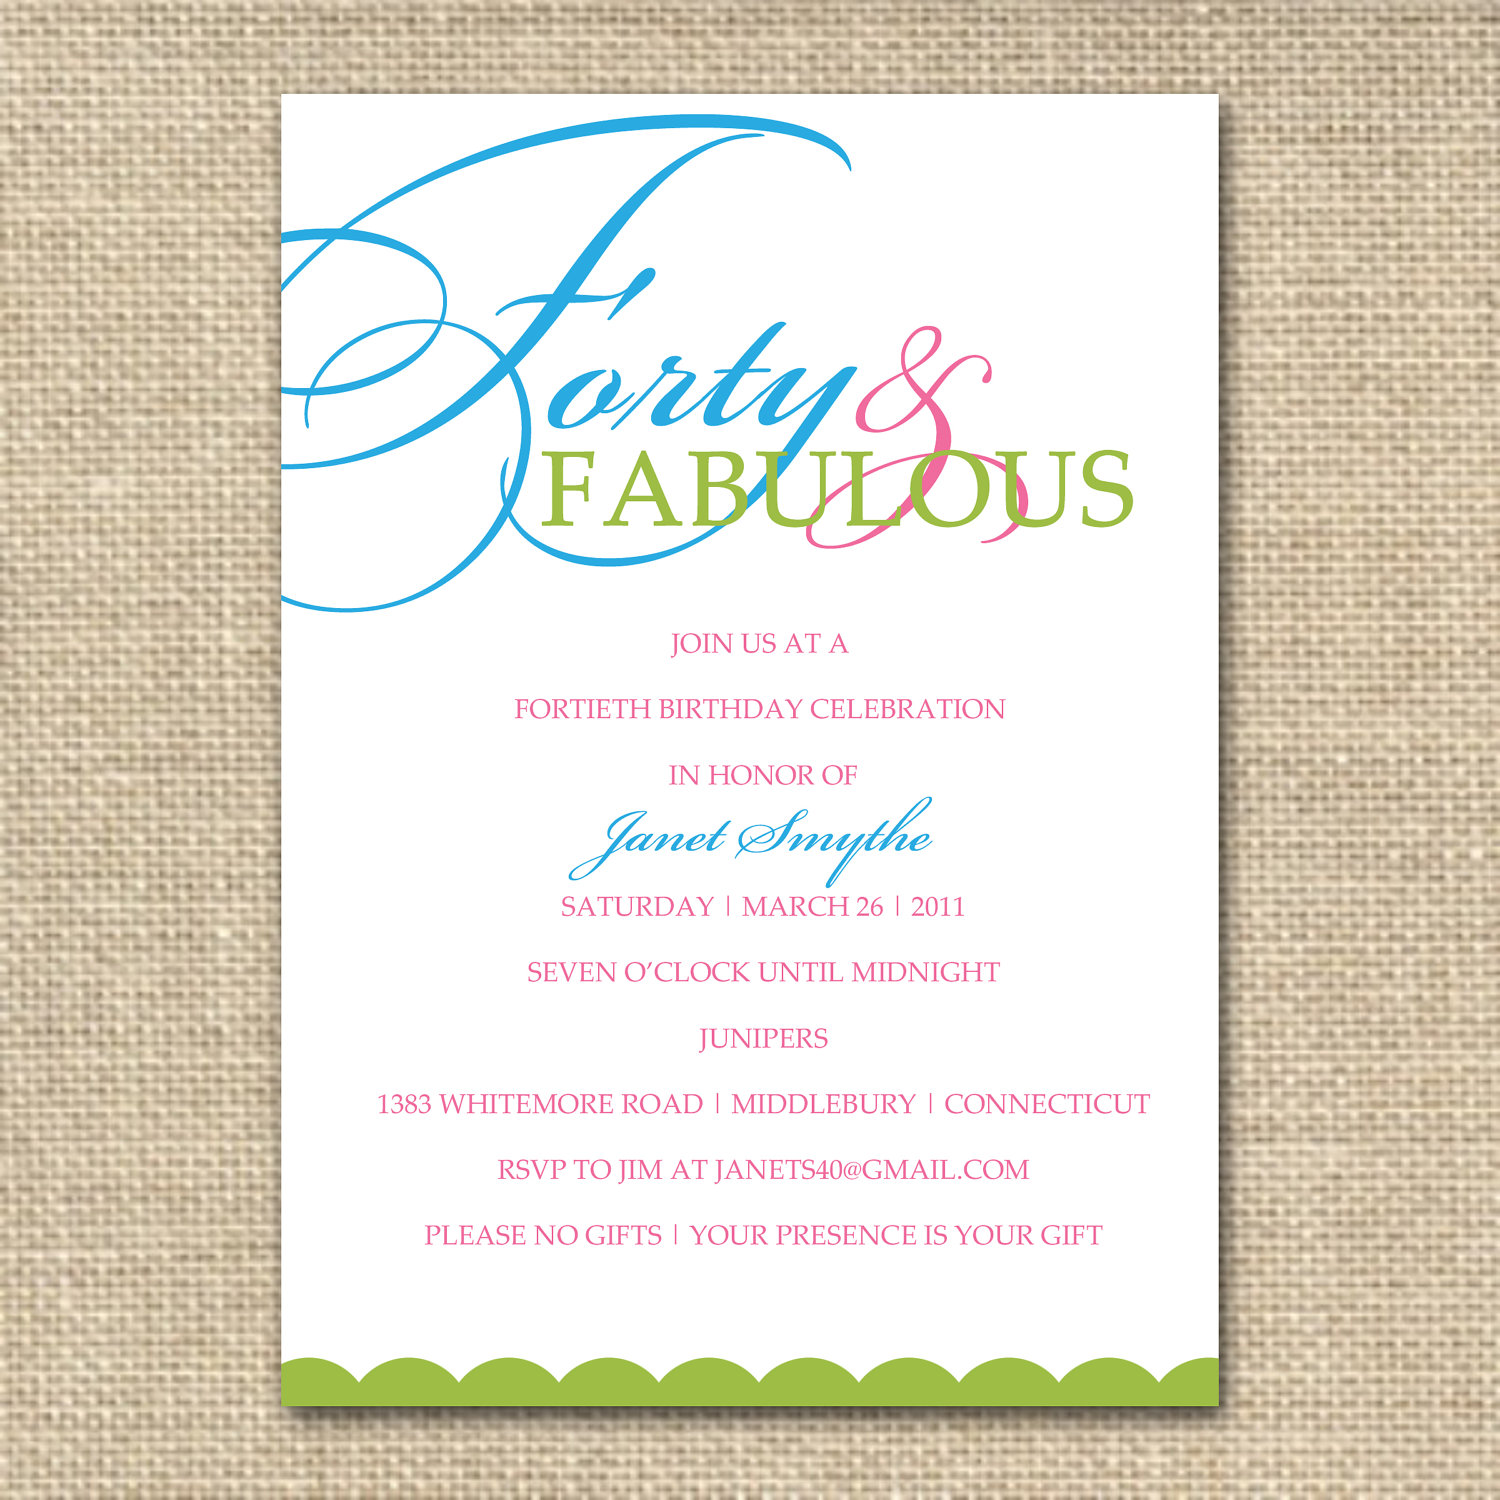 birthday invitation quotes ; 40th-birthday-invitation-wording-for-a-fetching-Birthday-invitation-design-with-fetching-layout-1